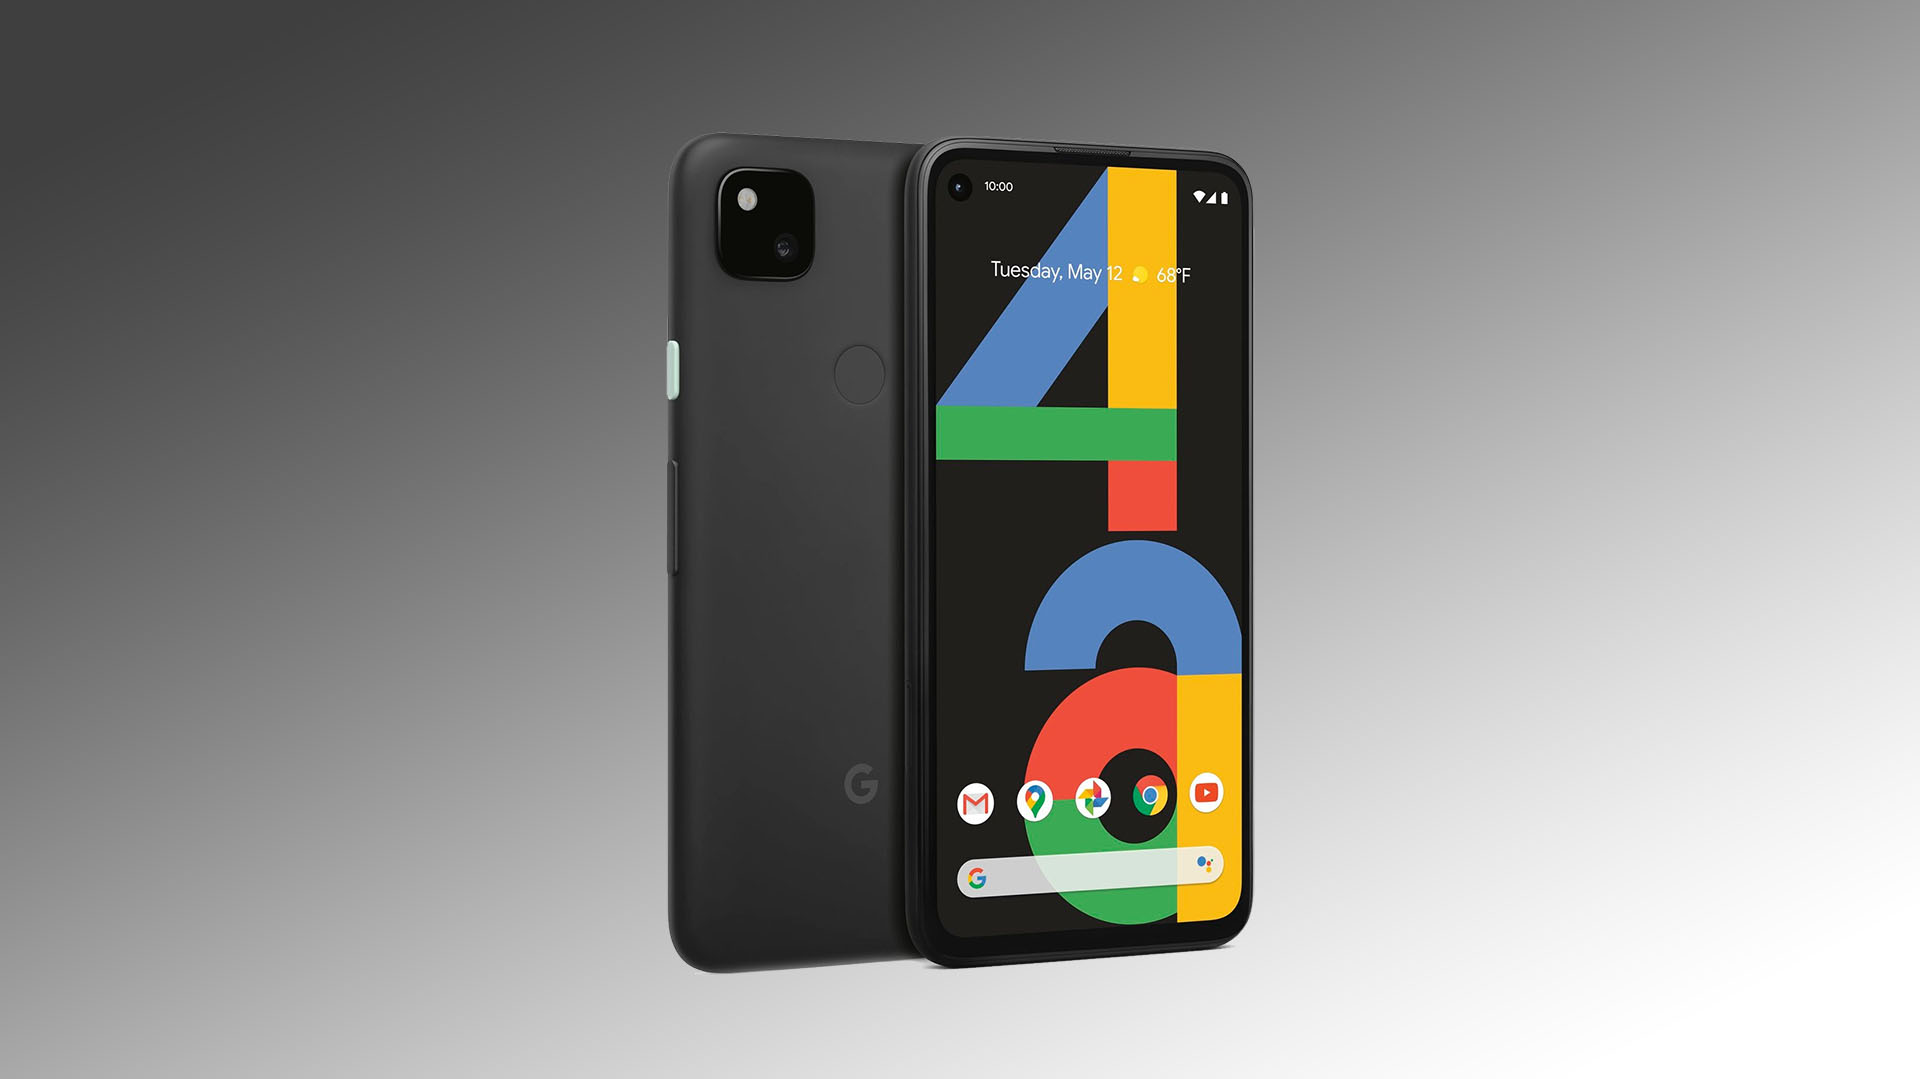 Google Pixel 4a Is Now Available For Pre-order - Samma3a Tech